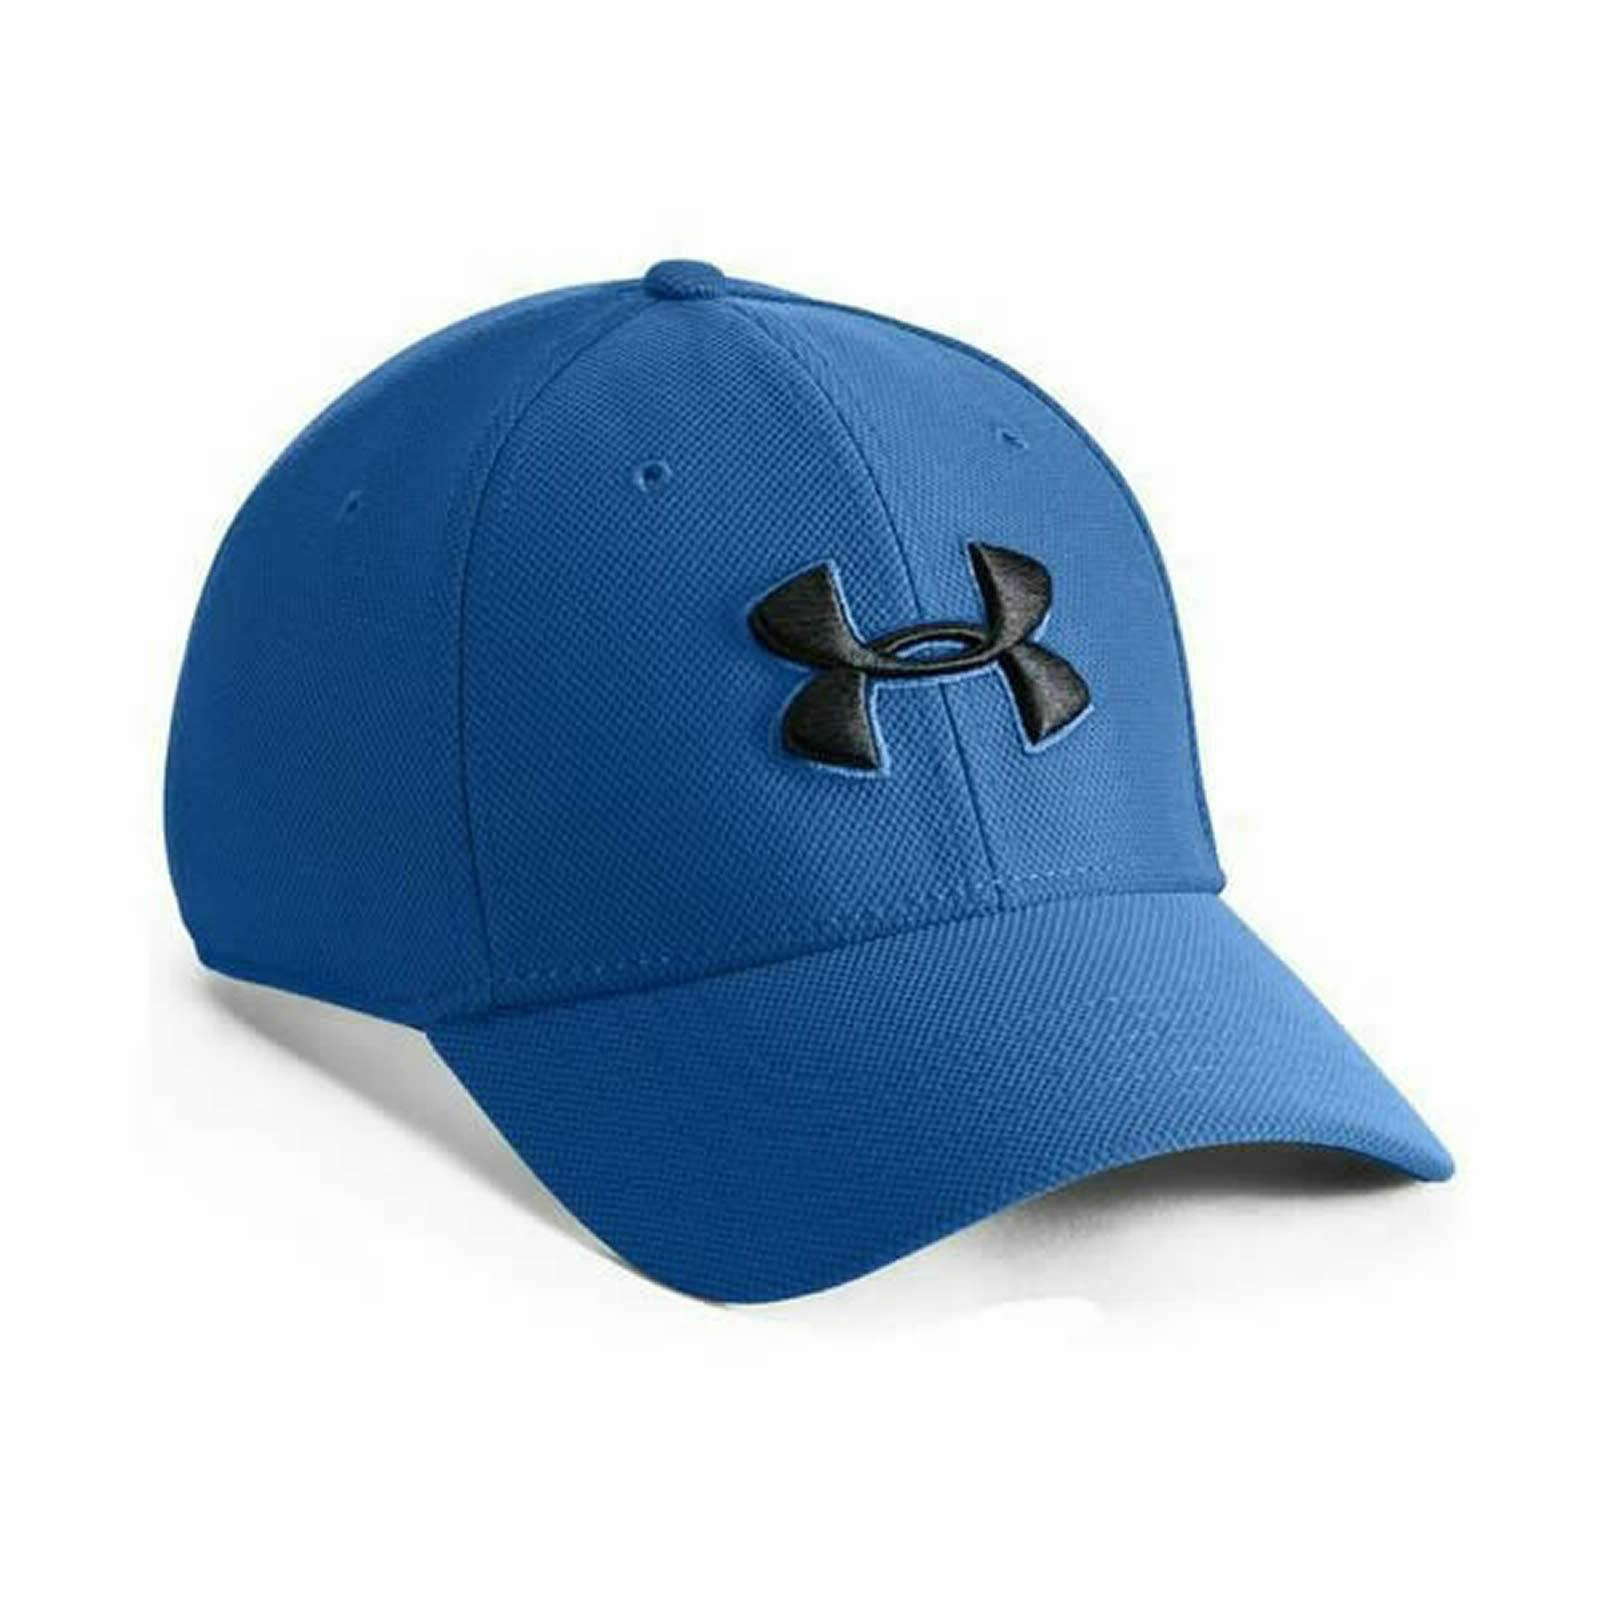 New Under Armour Stretch Embroidered Hat